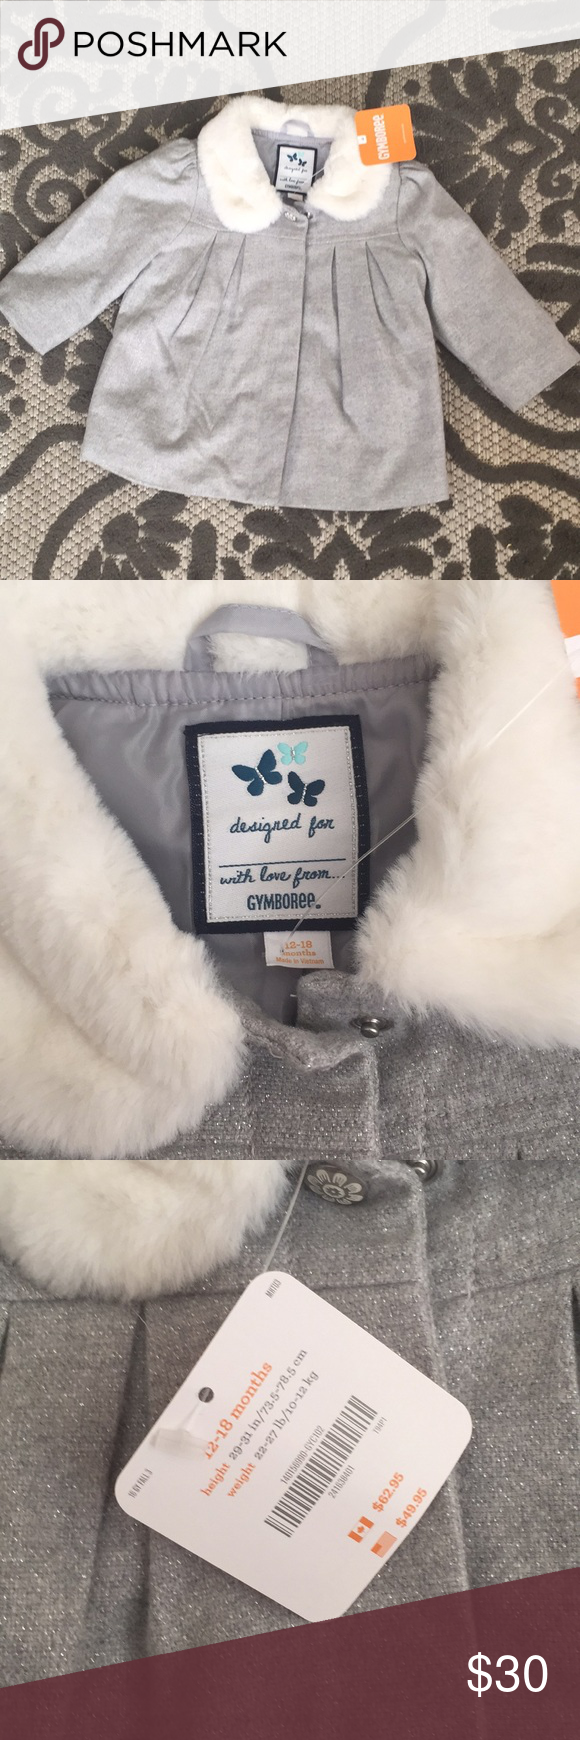 da3648c47947 NWT Gymboree 12-18 month baby girl coat gray New with tag Gymboree ...